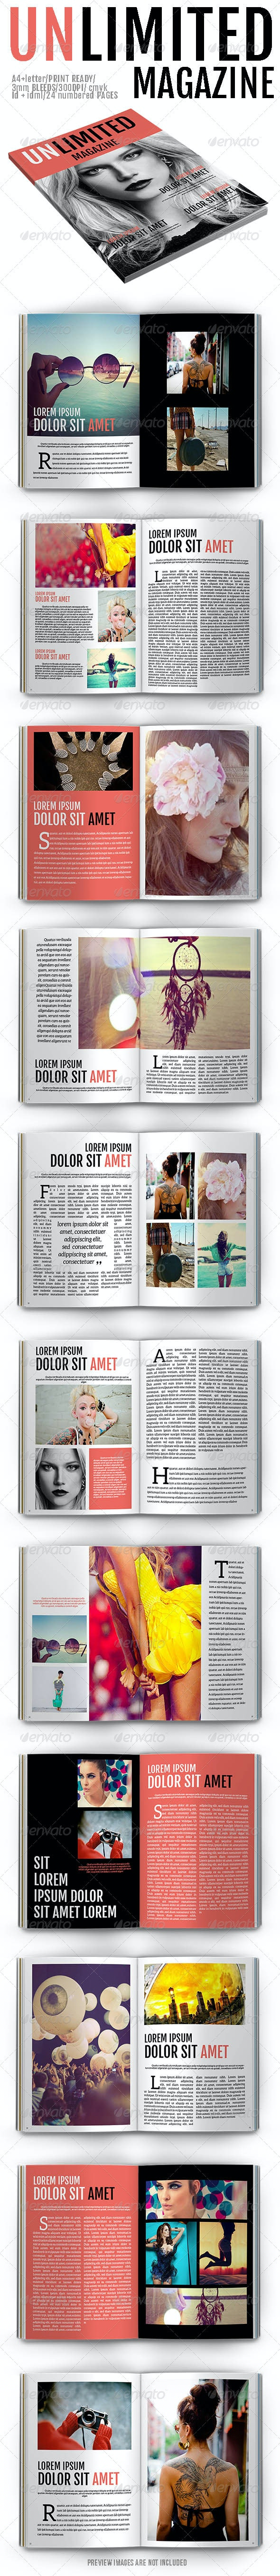 Unlimited Magazine - Magazines Print Templates